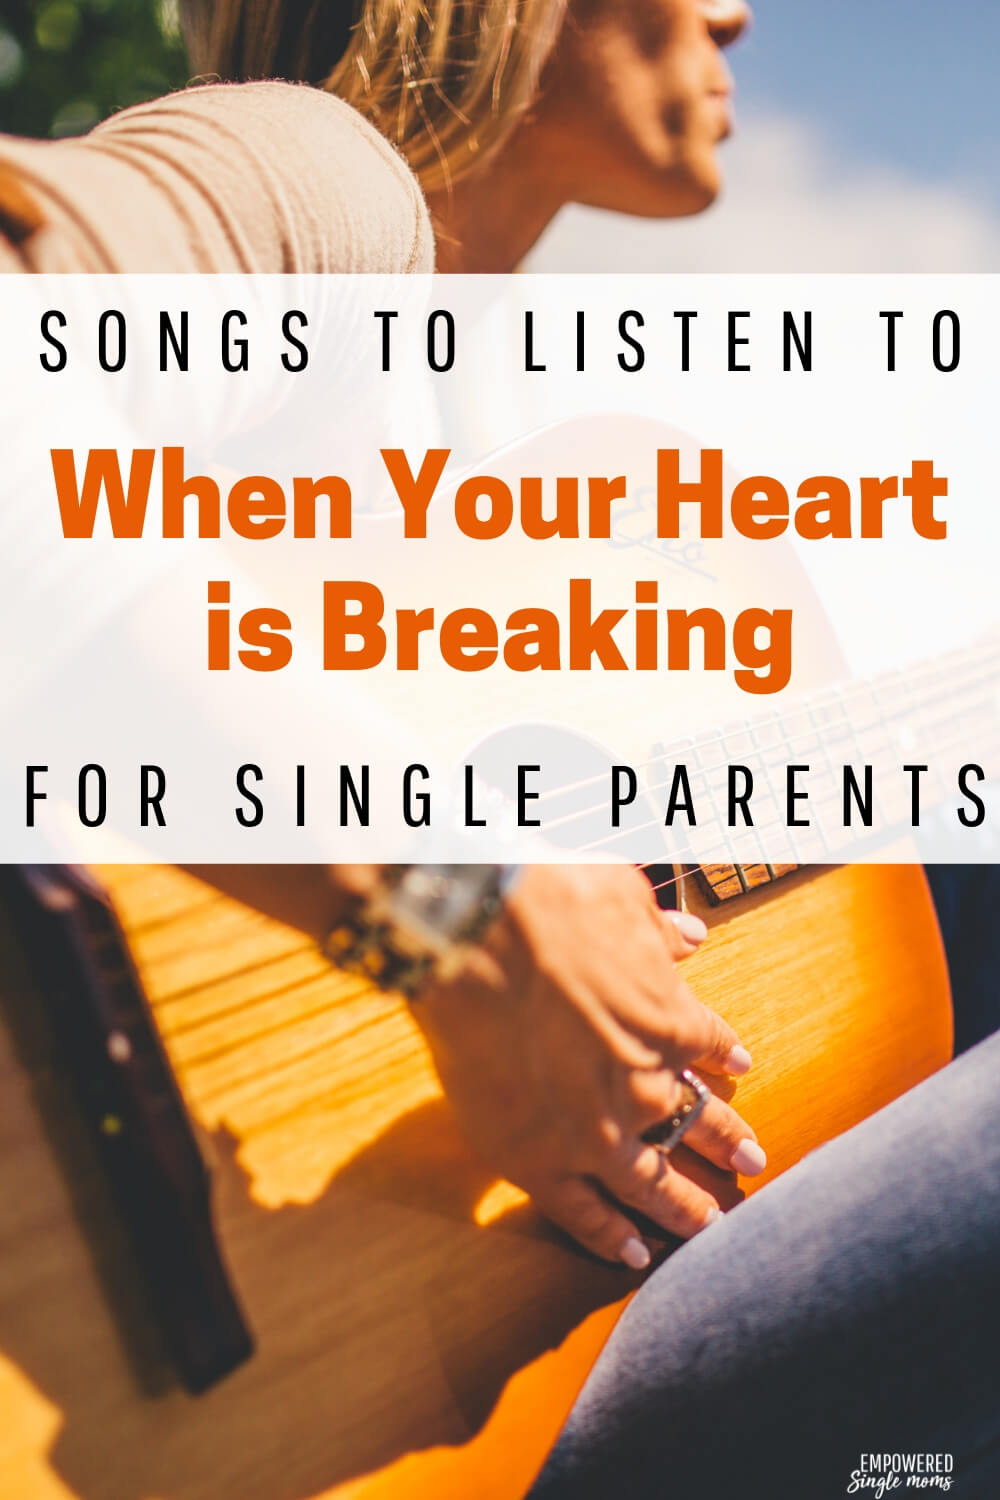 Song lyrics can help you heal from heartbreak. When you are so very sad it helps to know someone else has felt this bad. It also helps to listen to songs that inspire you to keep going and change your dreams. Find out the songs single moms listen to when they are getting over a broken heart